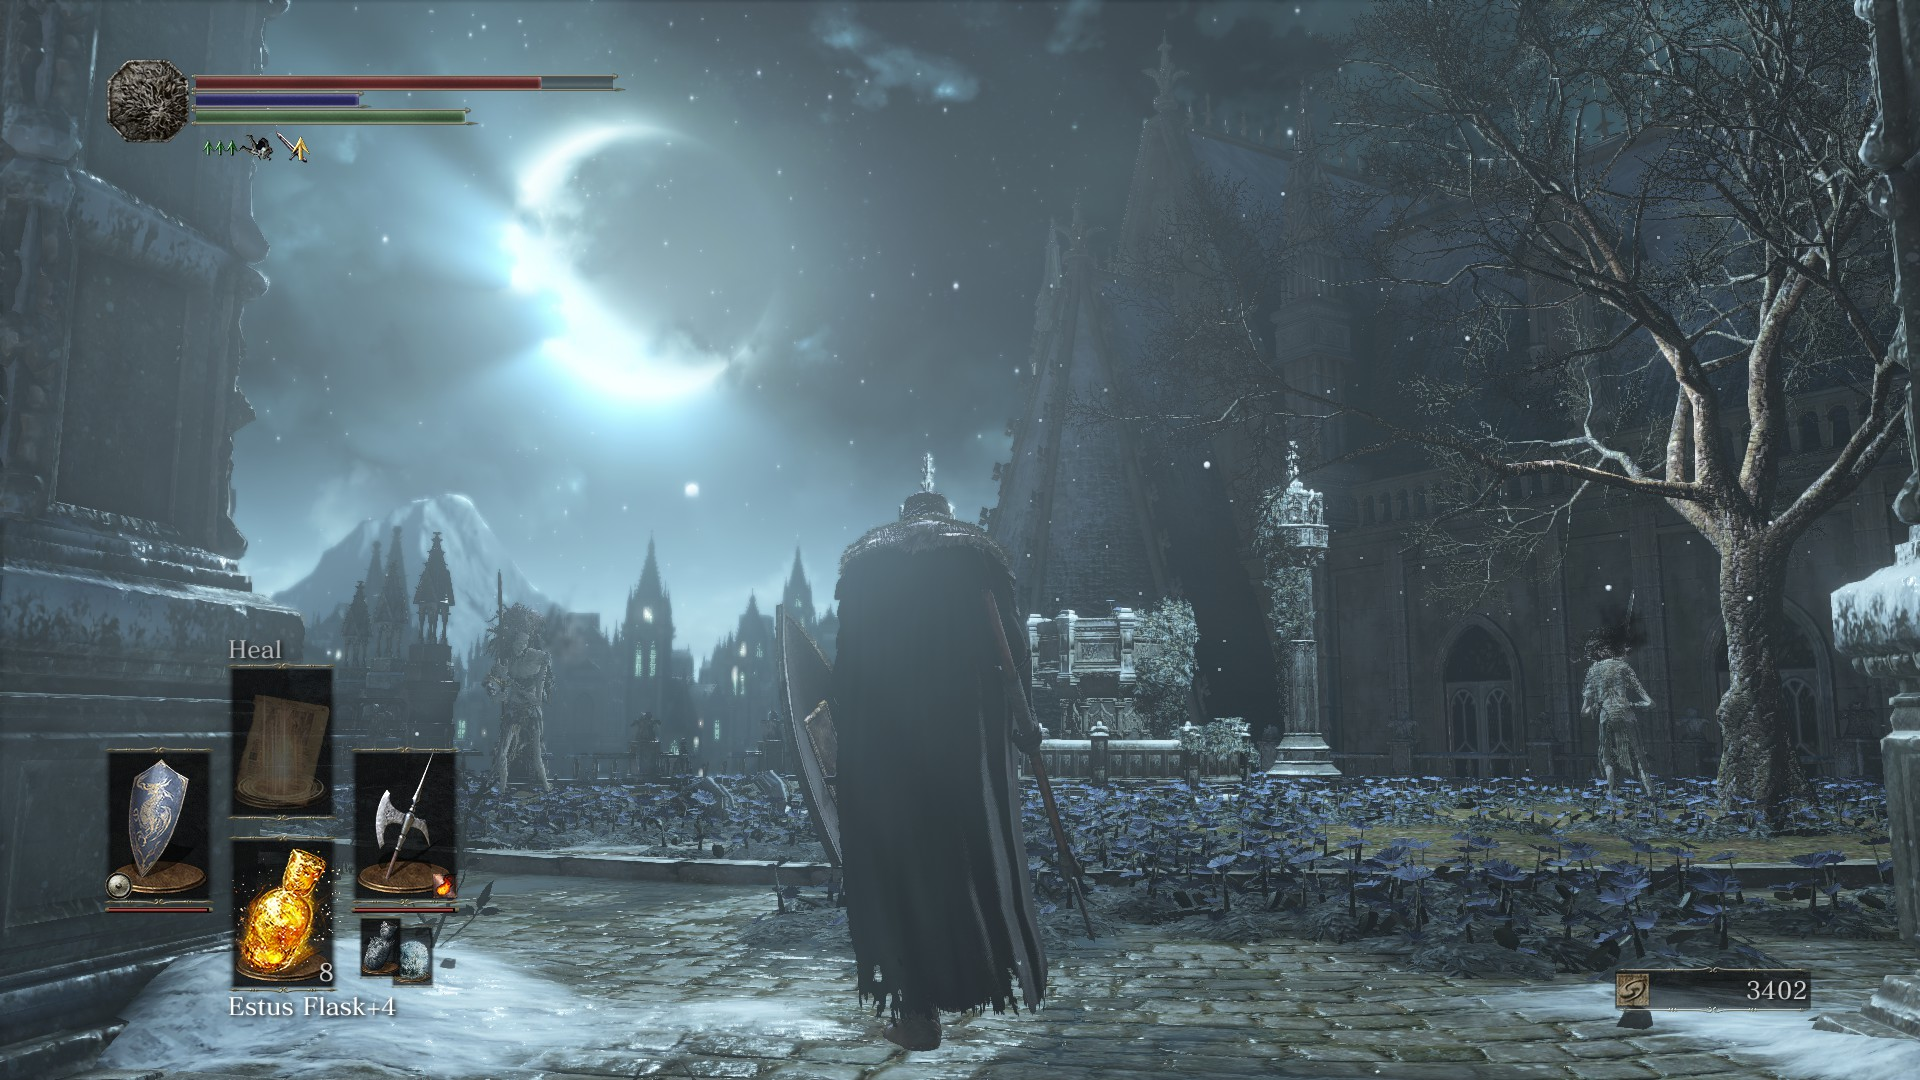 Divisive as ever, <em>Dark Souls II</em> seems to hover on the margins of <em>Dark Souls III</em>without ever quite being fully assimilated. There's certain gear, a reference to Forossa, and a handful of NPCs like Creighton and Alva return. But because the original game was a hazy memory in <em>DSII</em>, and <em>DSIII</em> is a direct follow-on to that,<em> DSII</em> mostly gets shunted to the side.